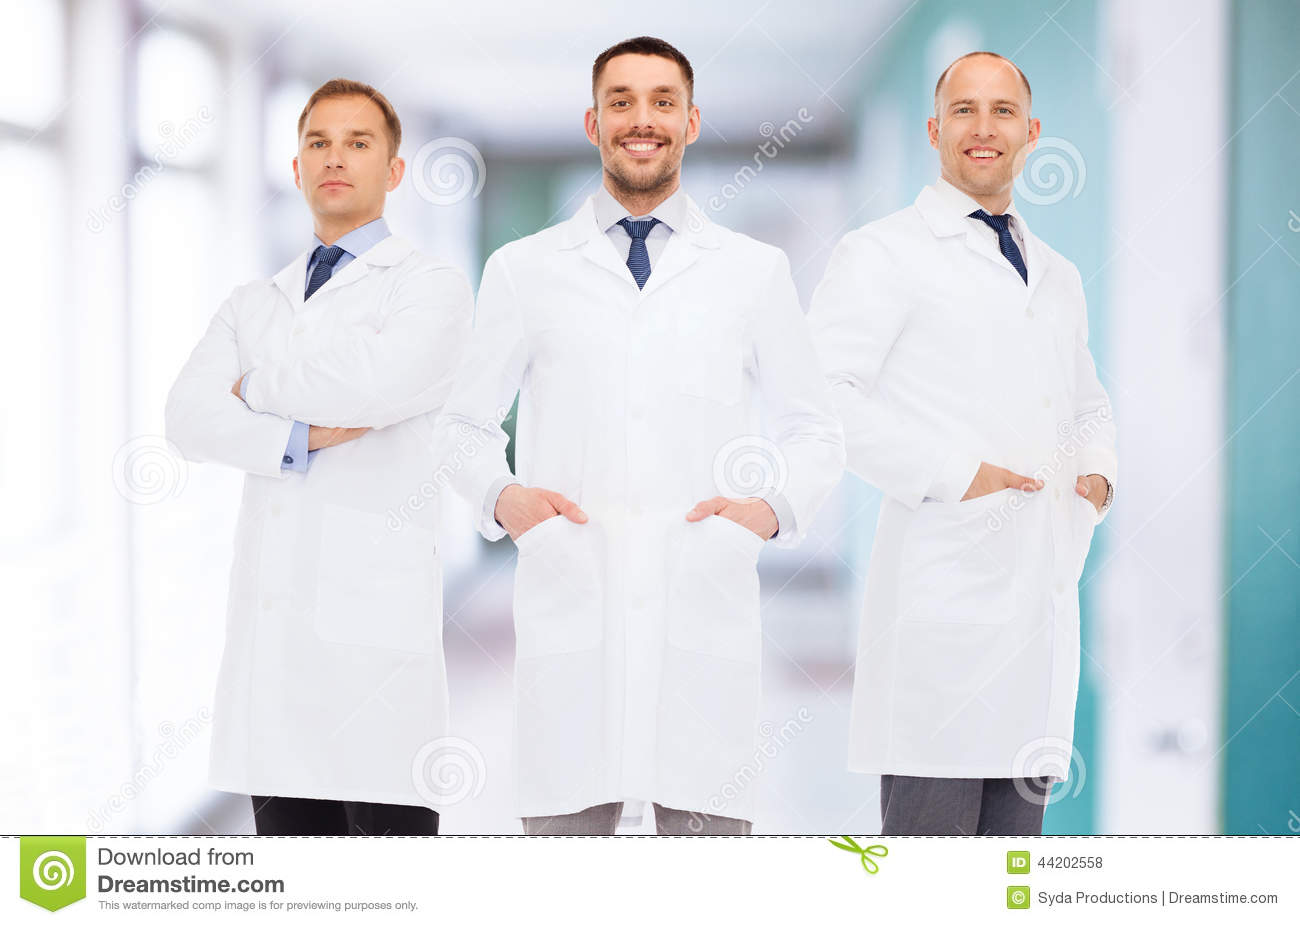 Smiling Male Doctors In White Coats Stock Photo - Image: 44202558